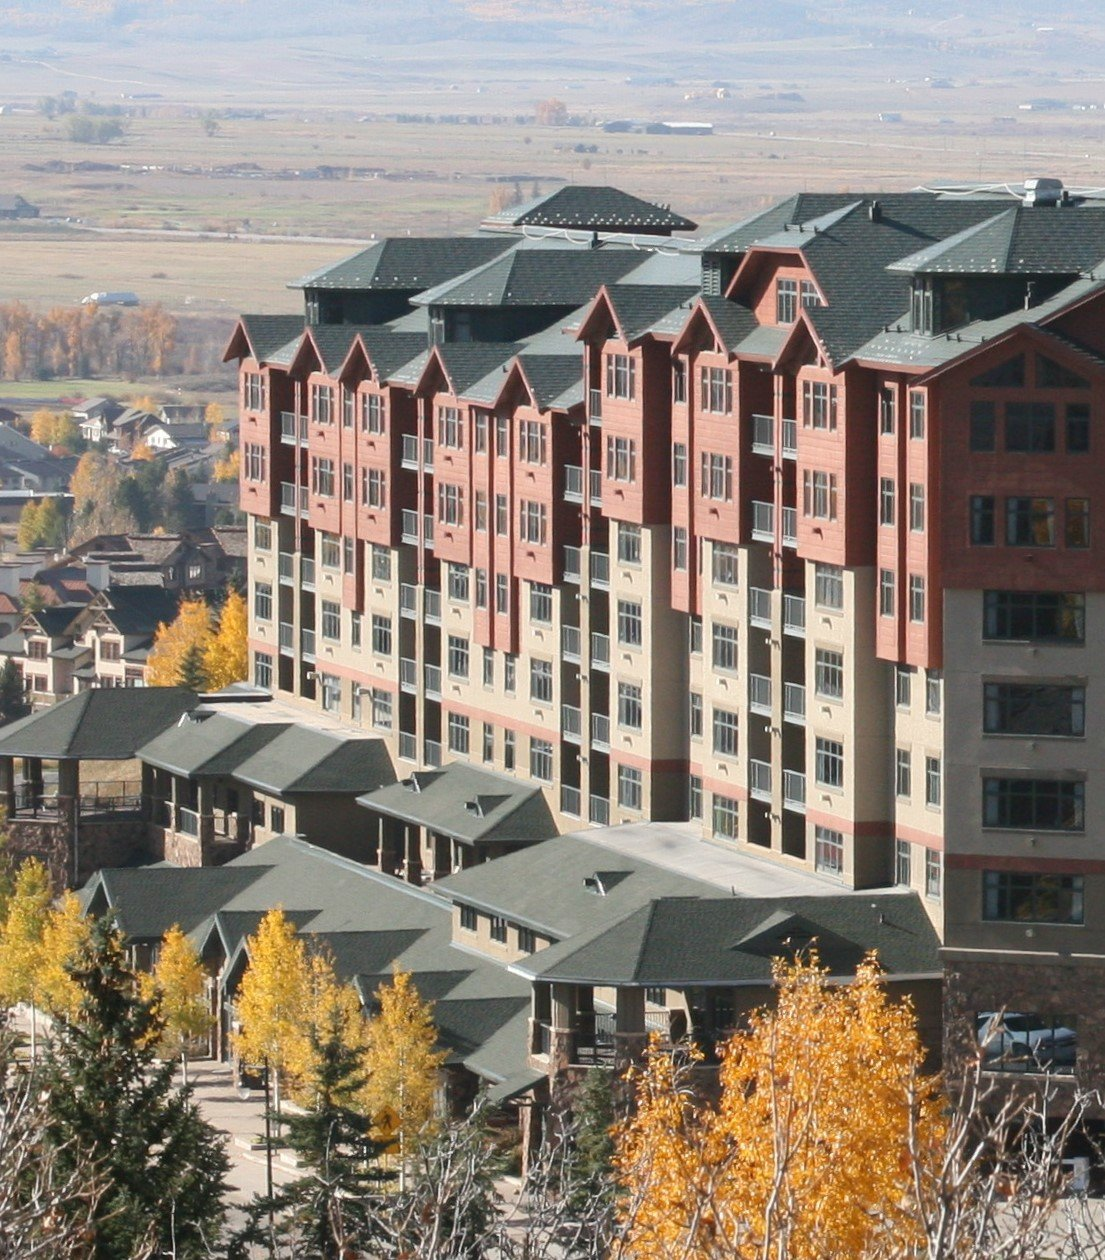 Commercial Real Estate Consulting Services in Steamboat Springs, CO